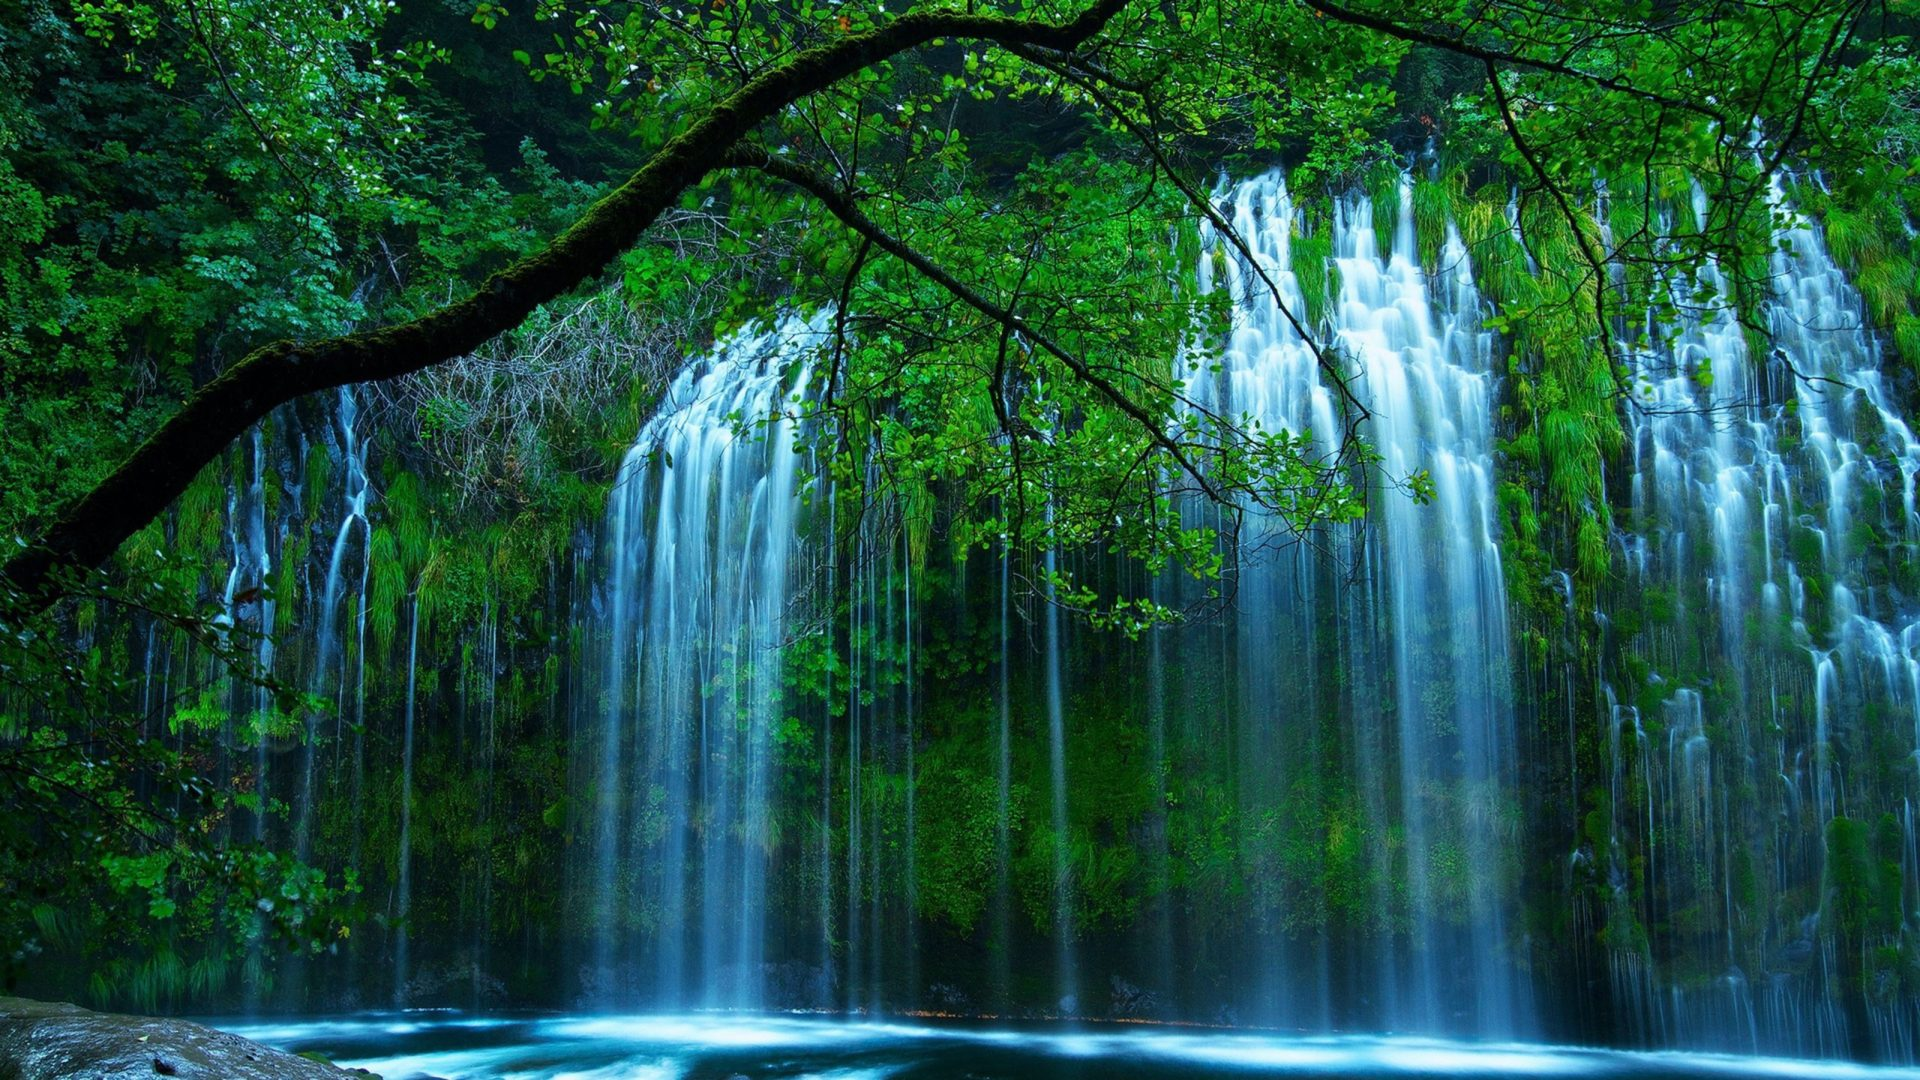 Animated Waterfalls Wallpapers Free Download Natural Beauty Beautiful Waterfall Drop Of Water Through